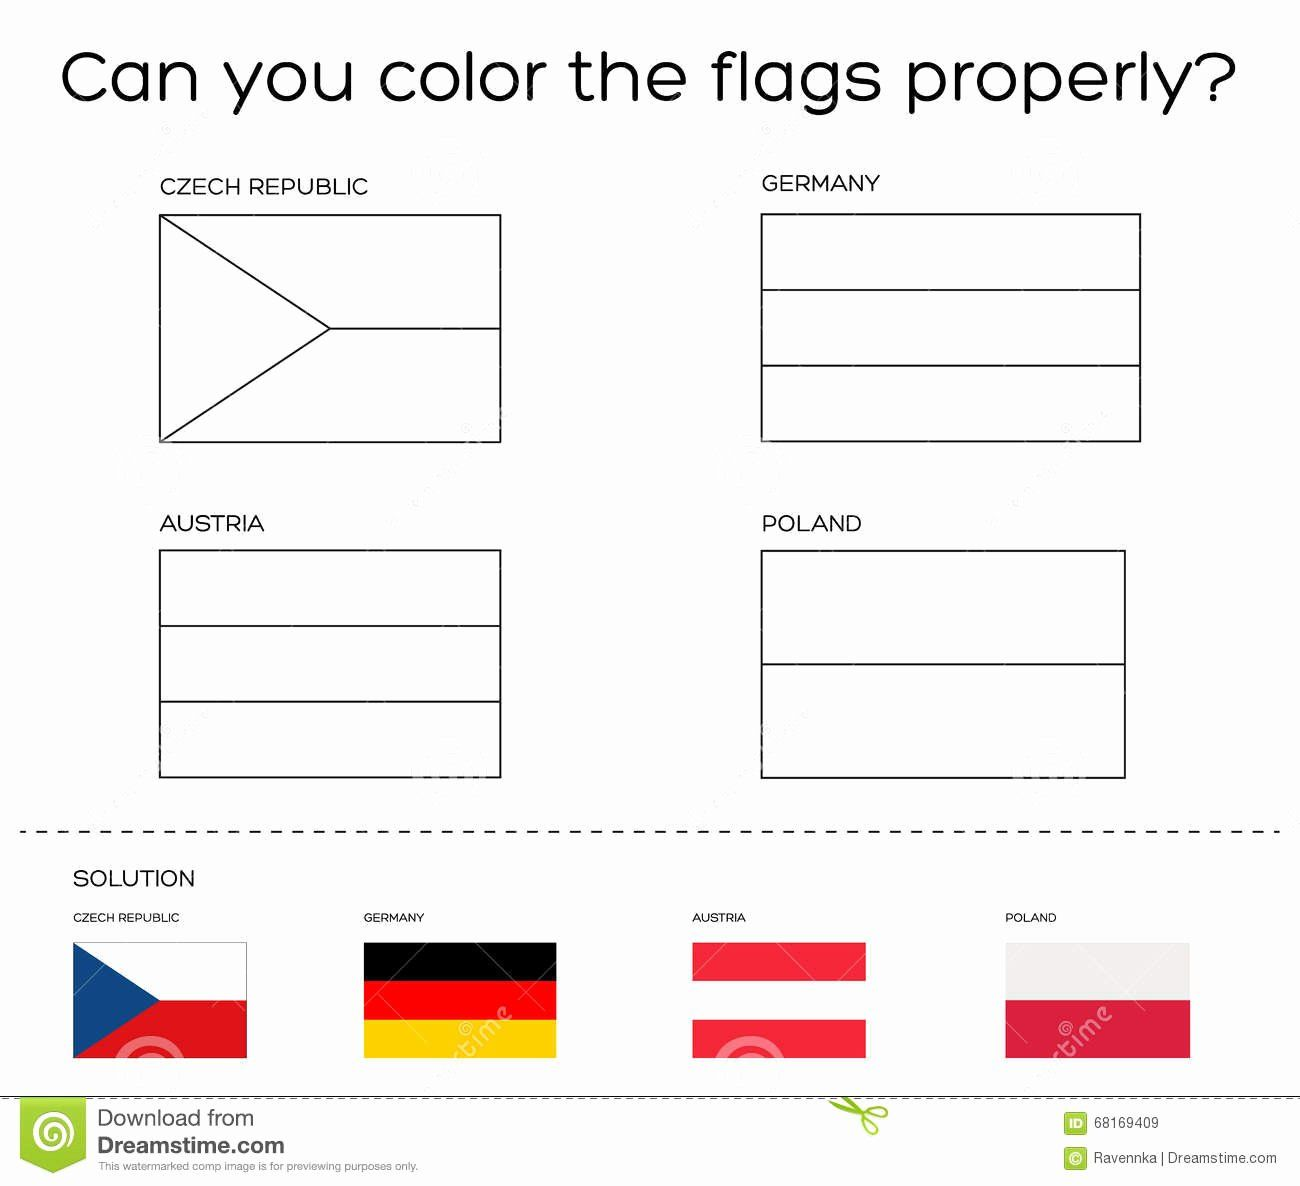 Illinois Flag Coloring Page Best Of Coloring Book Task European Flags With Solution Stock Flag Coloring Pages European Flags Germany Flag